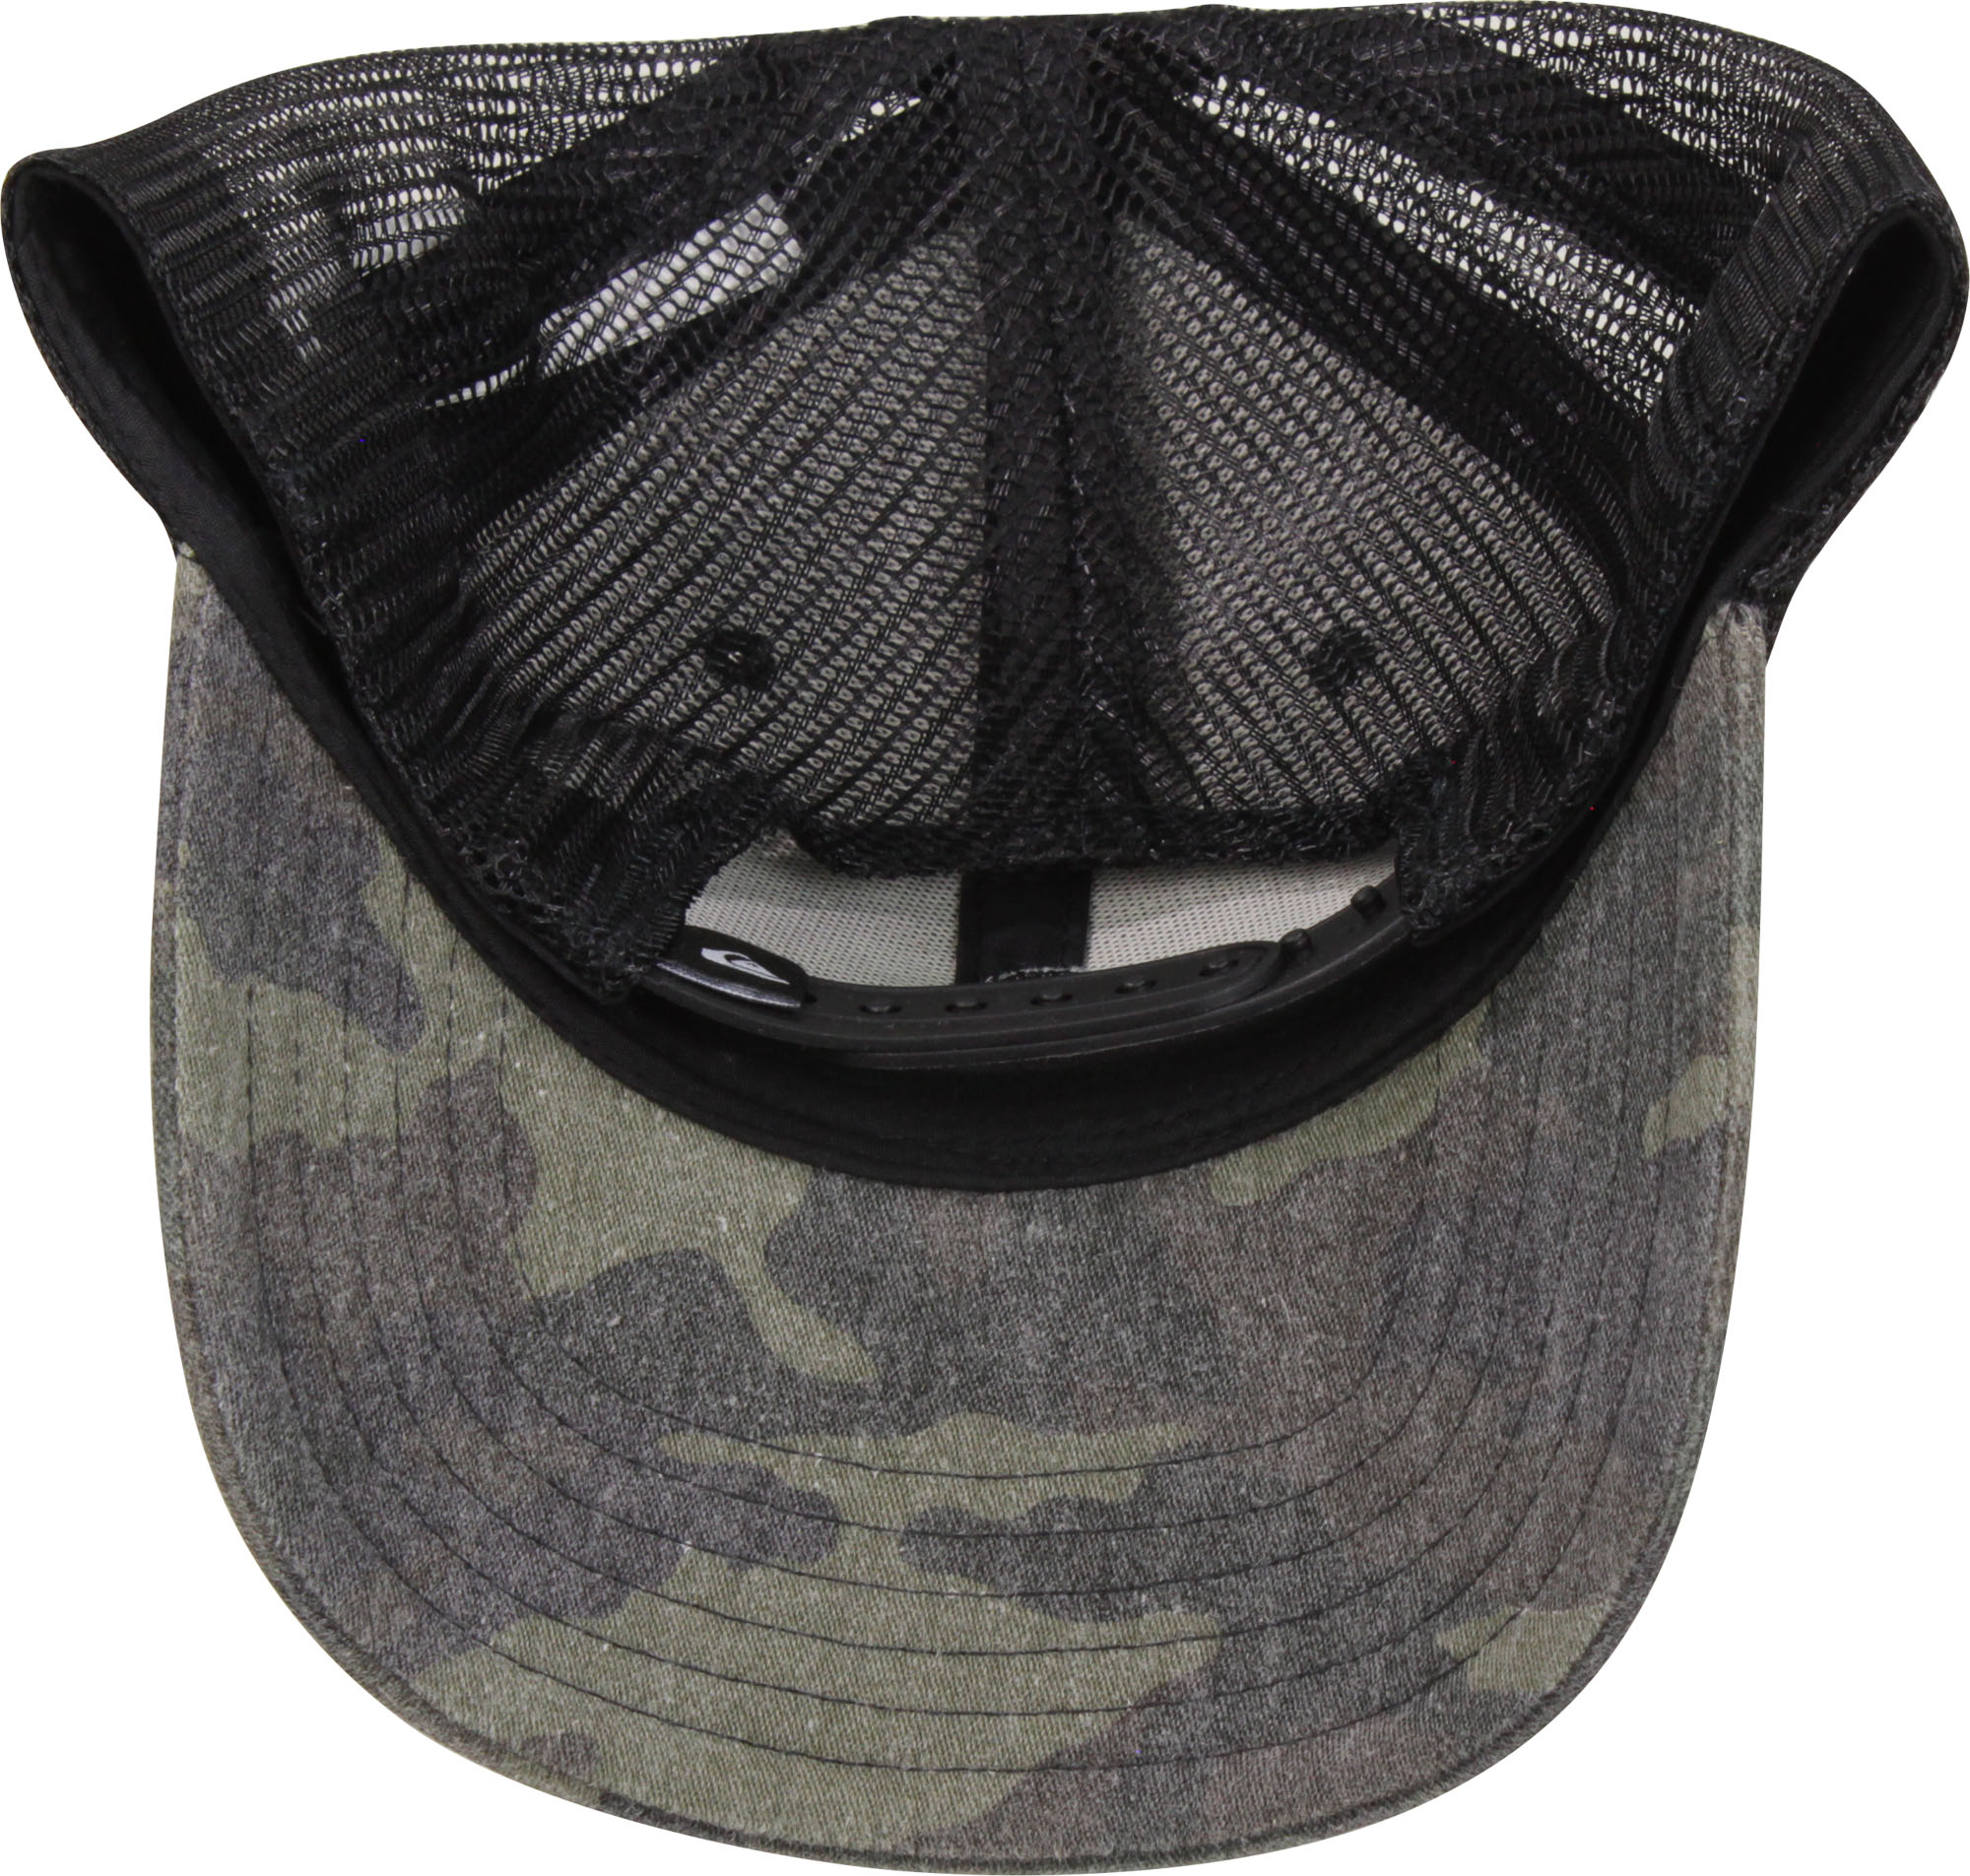 official photos a9f72 9c5e0 Quiksilver-Mens-Grounder-Snapback-Trucker-Hat-Camo-Black thumbnail